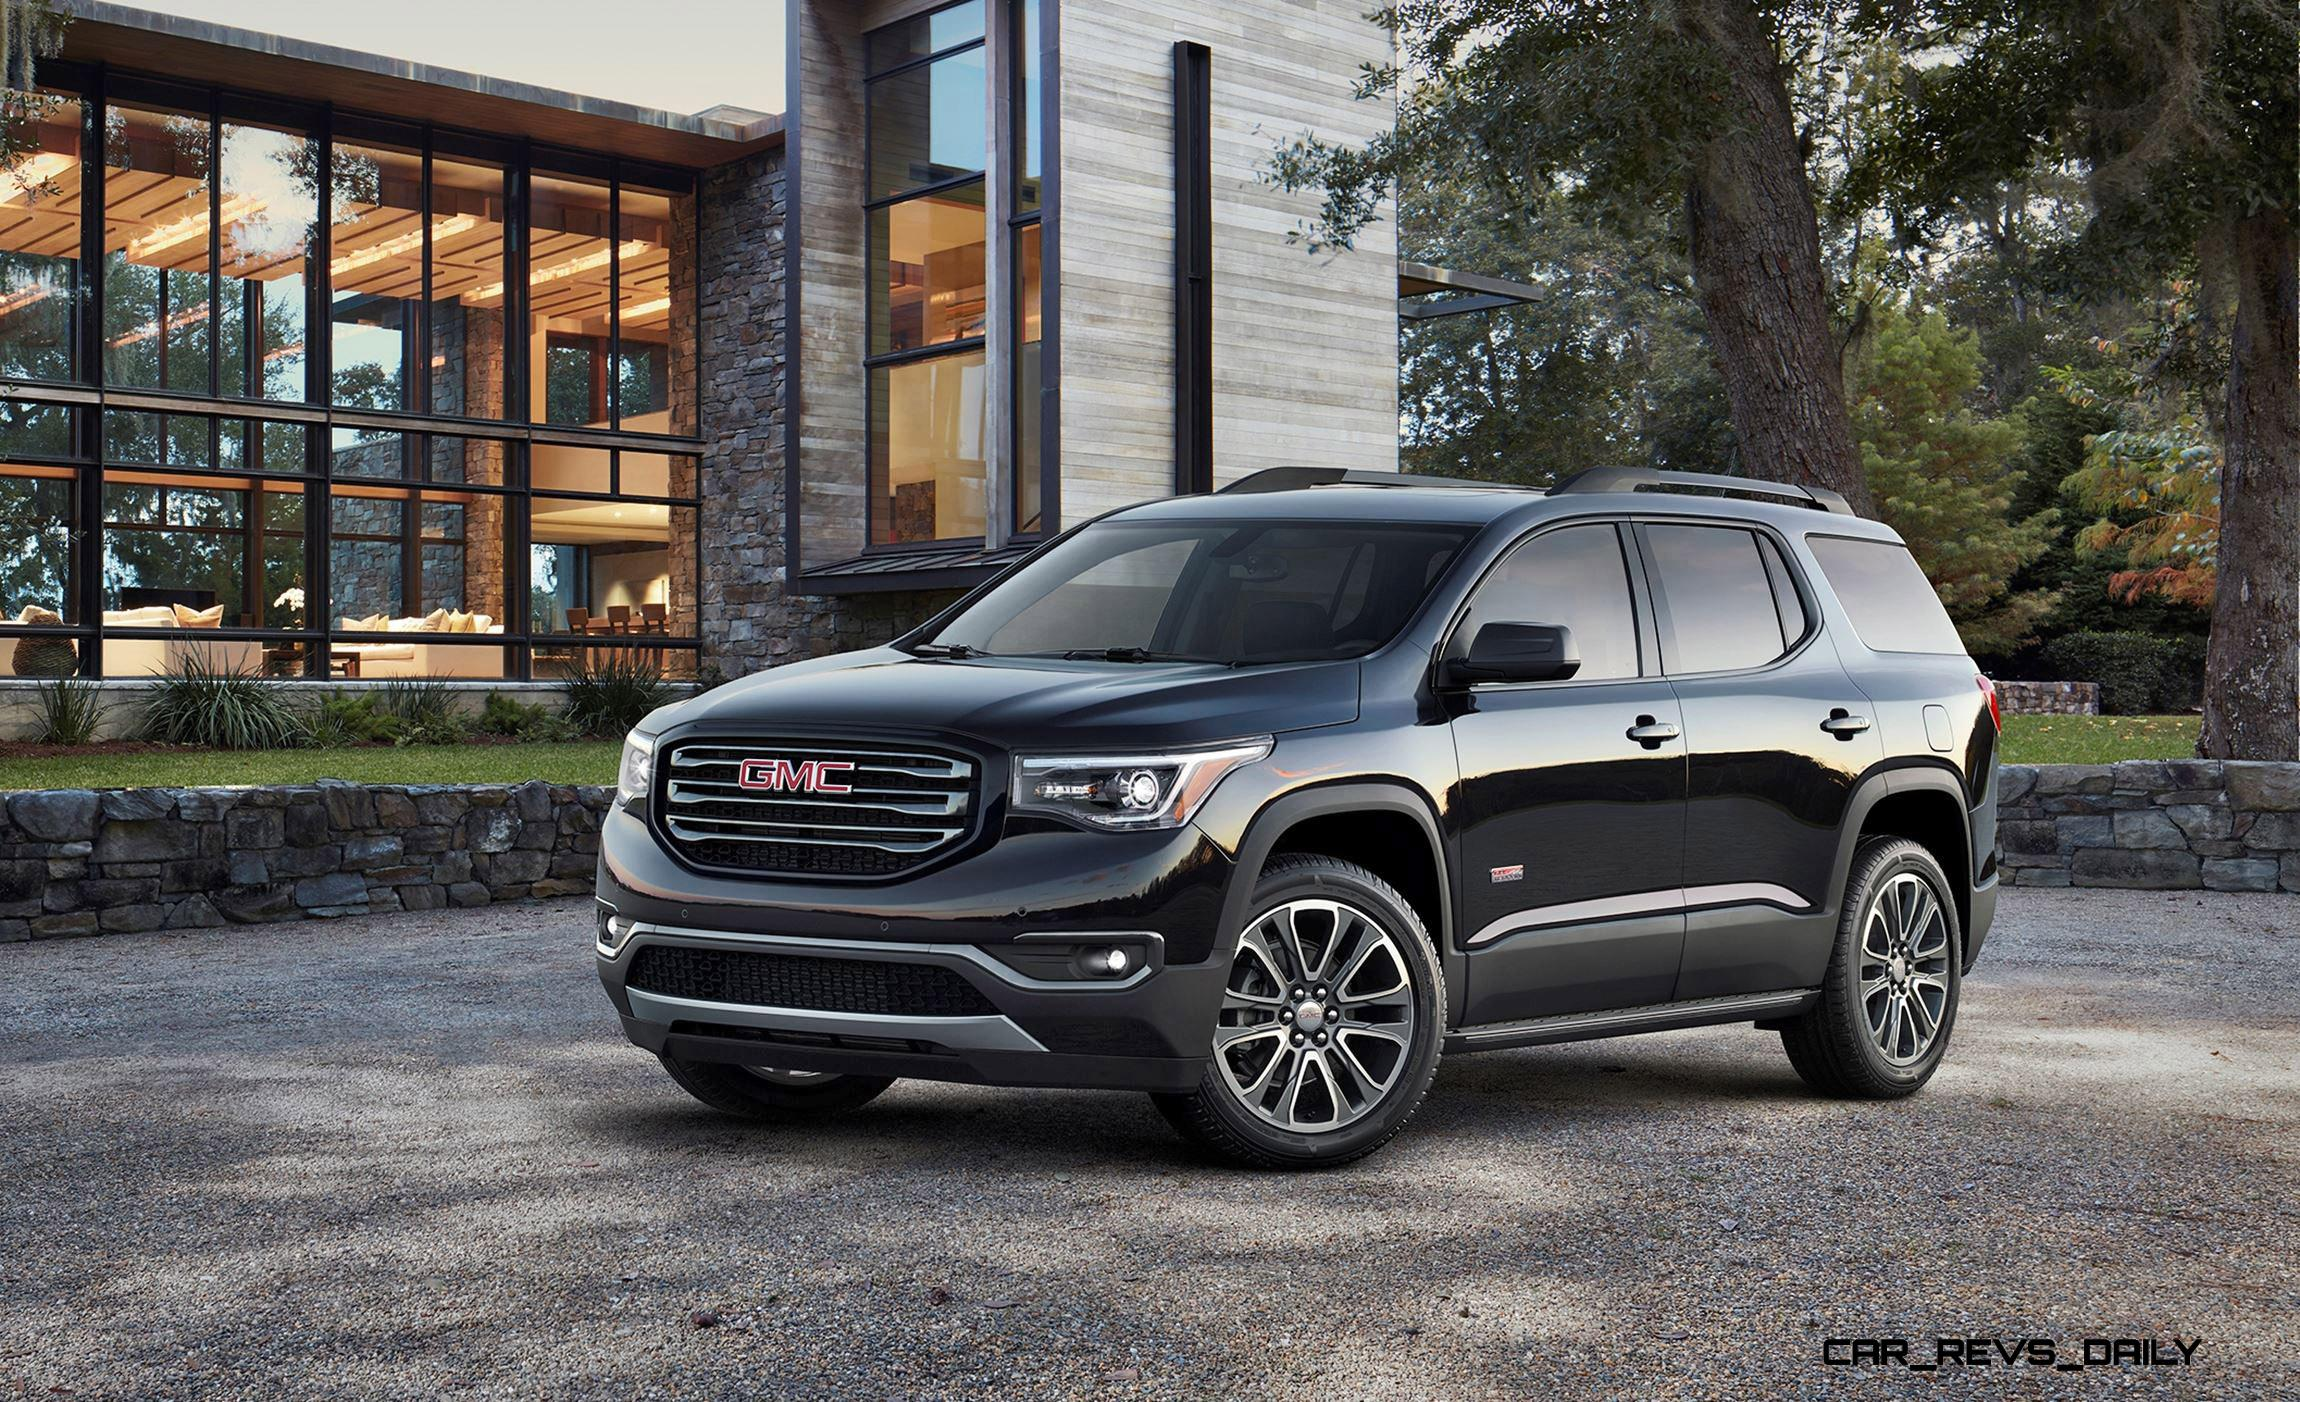 2017 gmc acadia shows radical redesign 700lb weight loss new all terrain spec. Black Bedroom Furniture Sets. Home Design Ideas